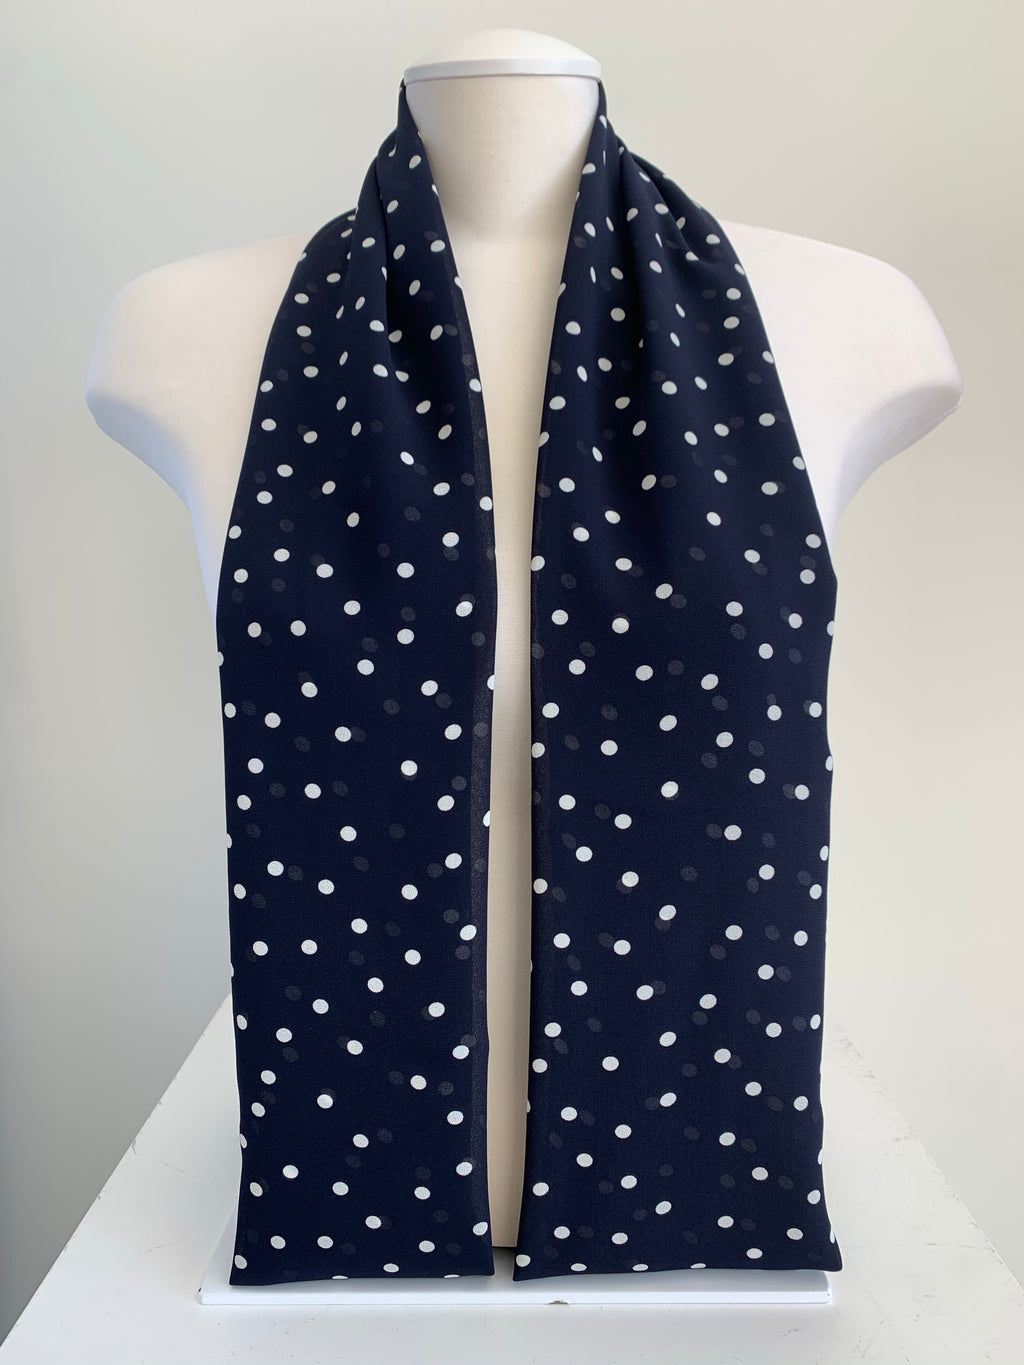 Polka Dot Chiffon - Navy Blue